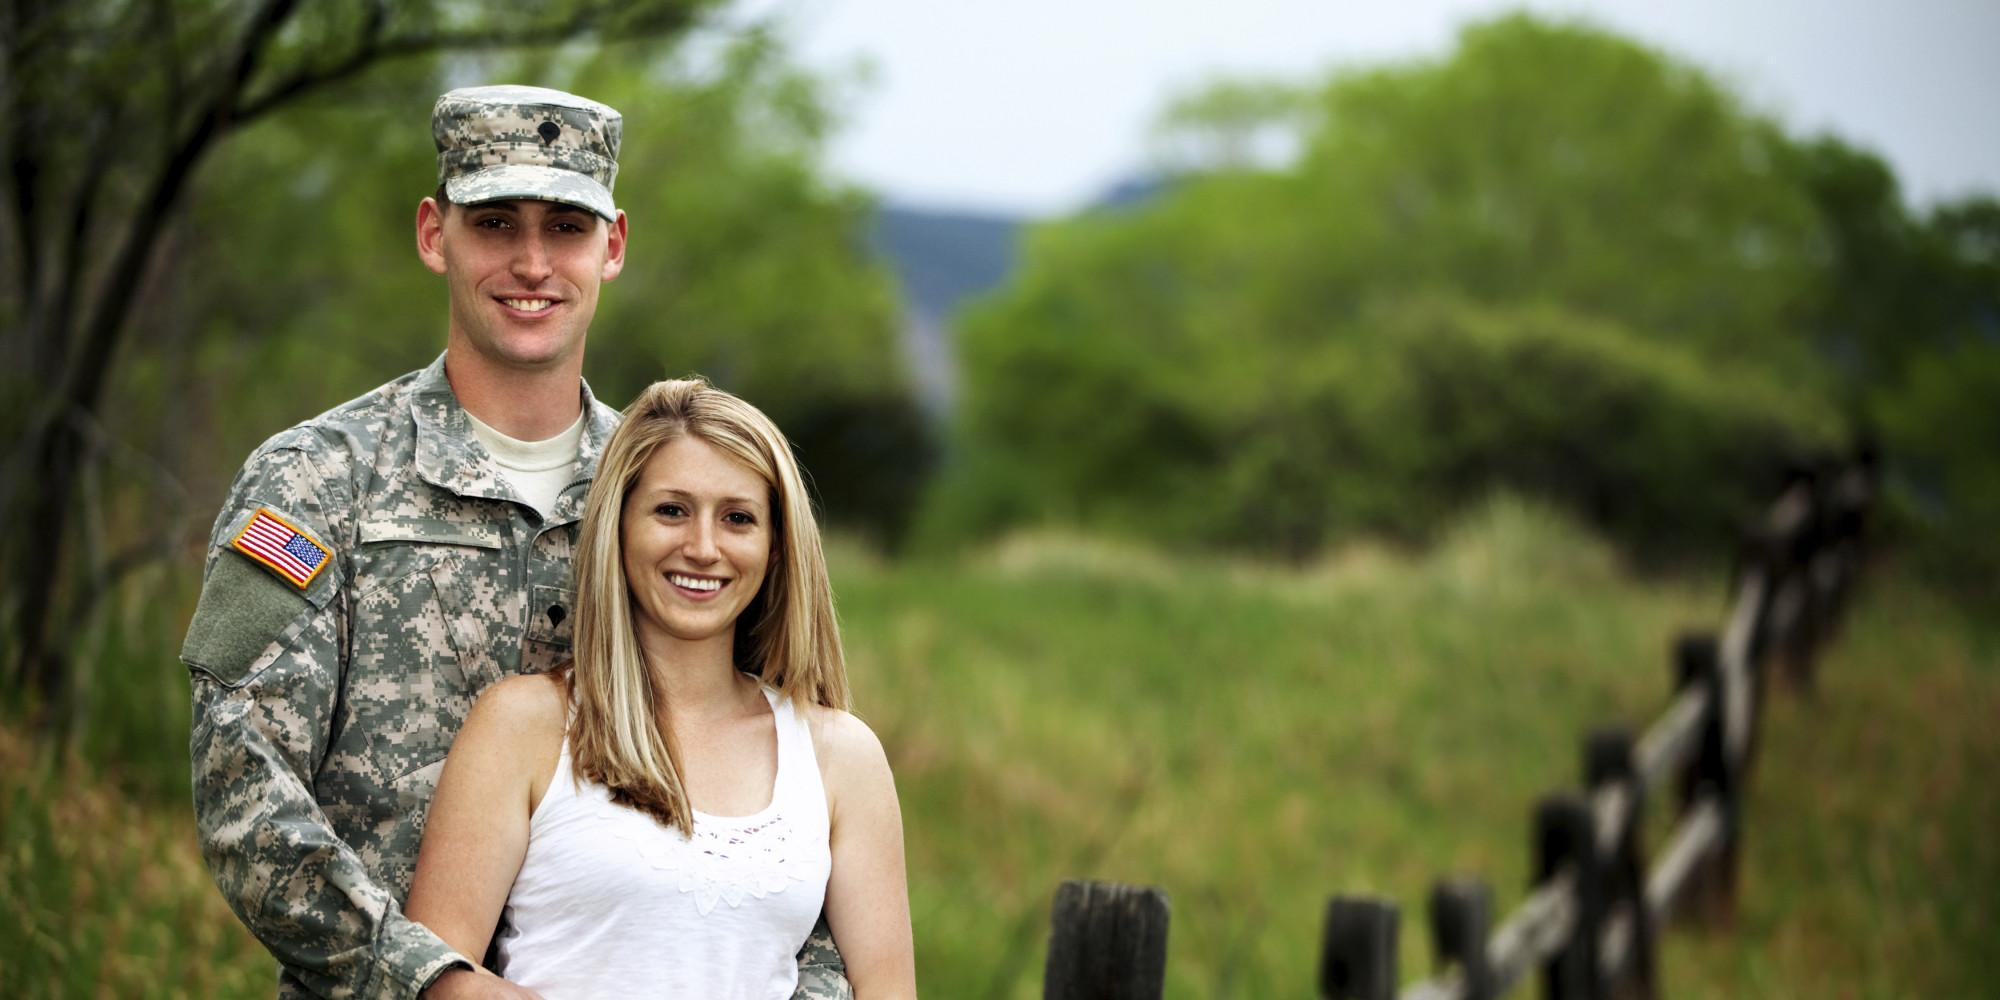 Getting Married while in the Army